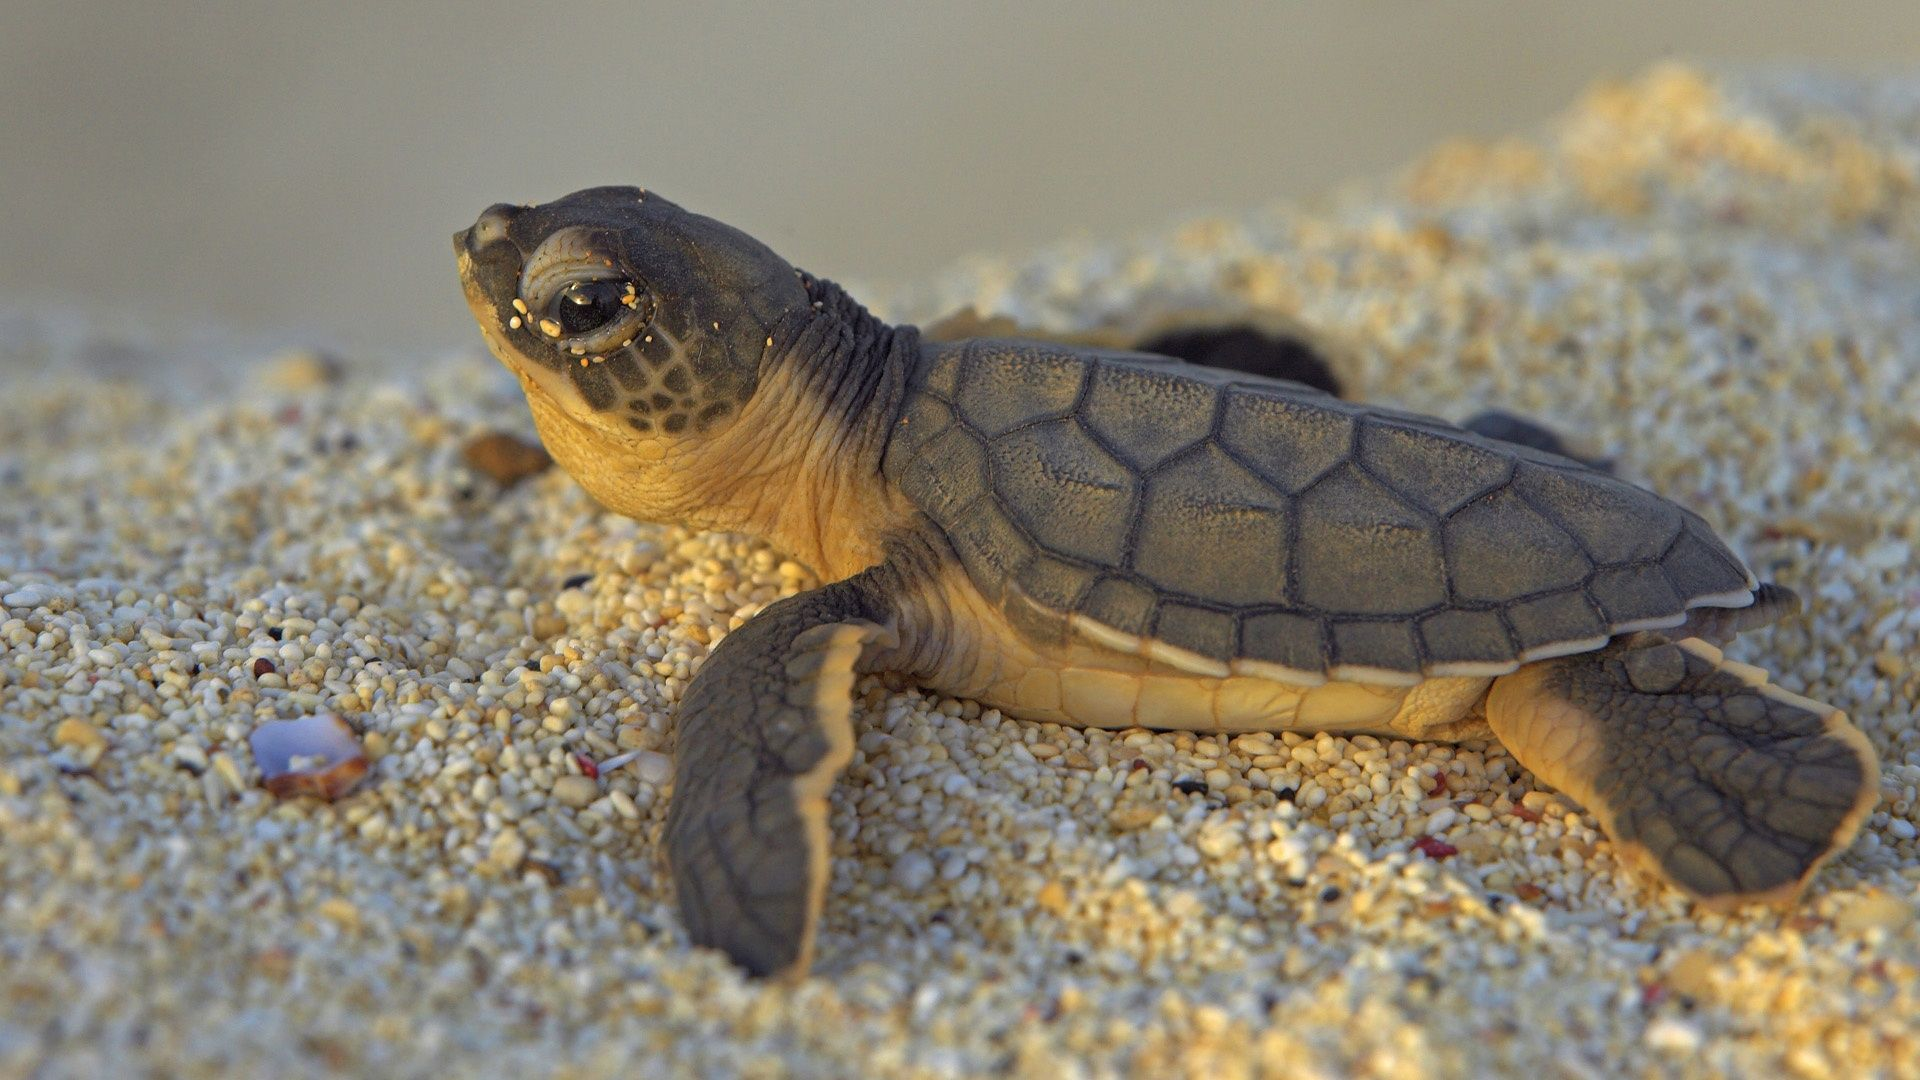 1920x1080 Baby Turtle Wallpaper For Android Wallpaper | WallpaperLepi